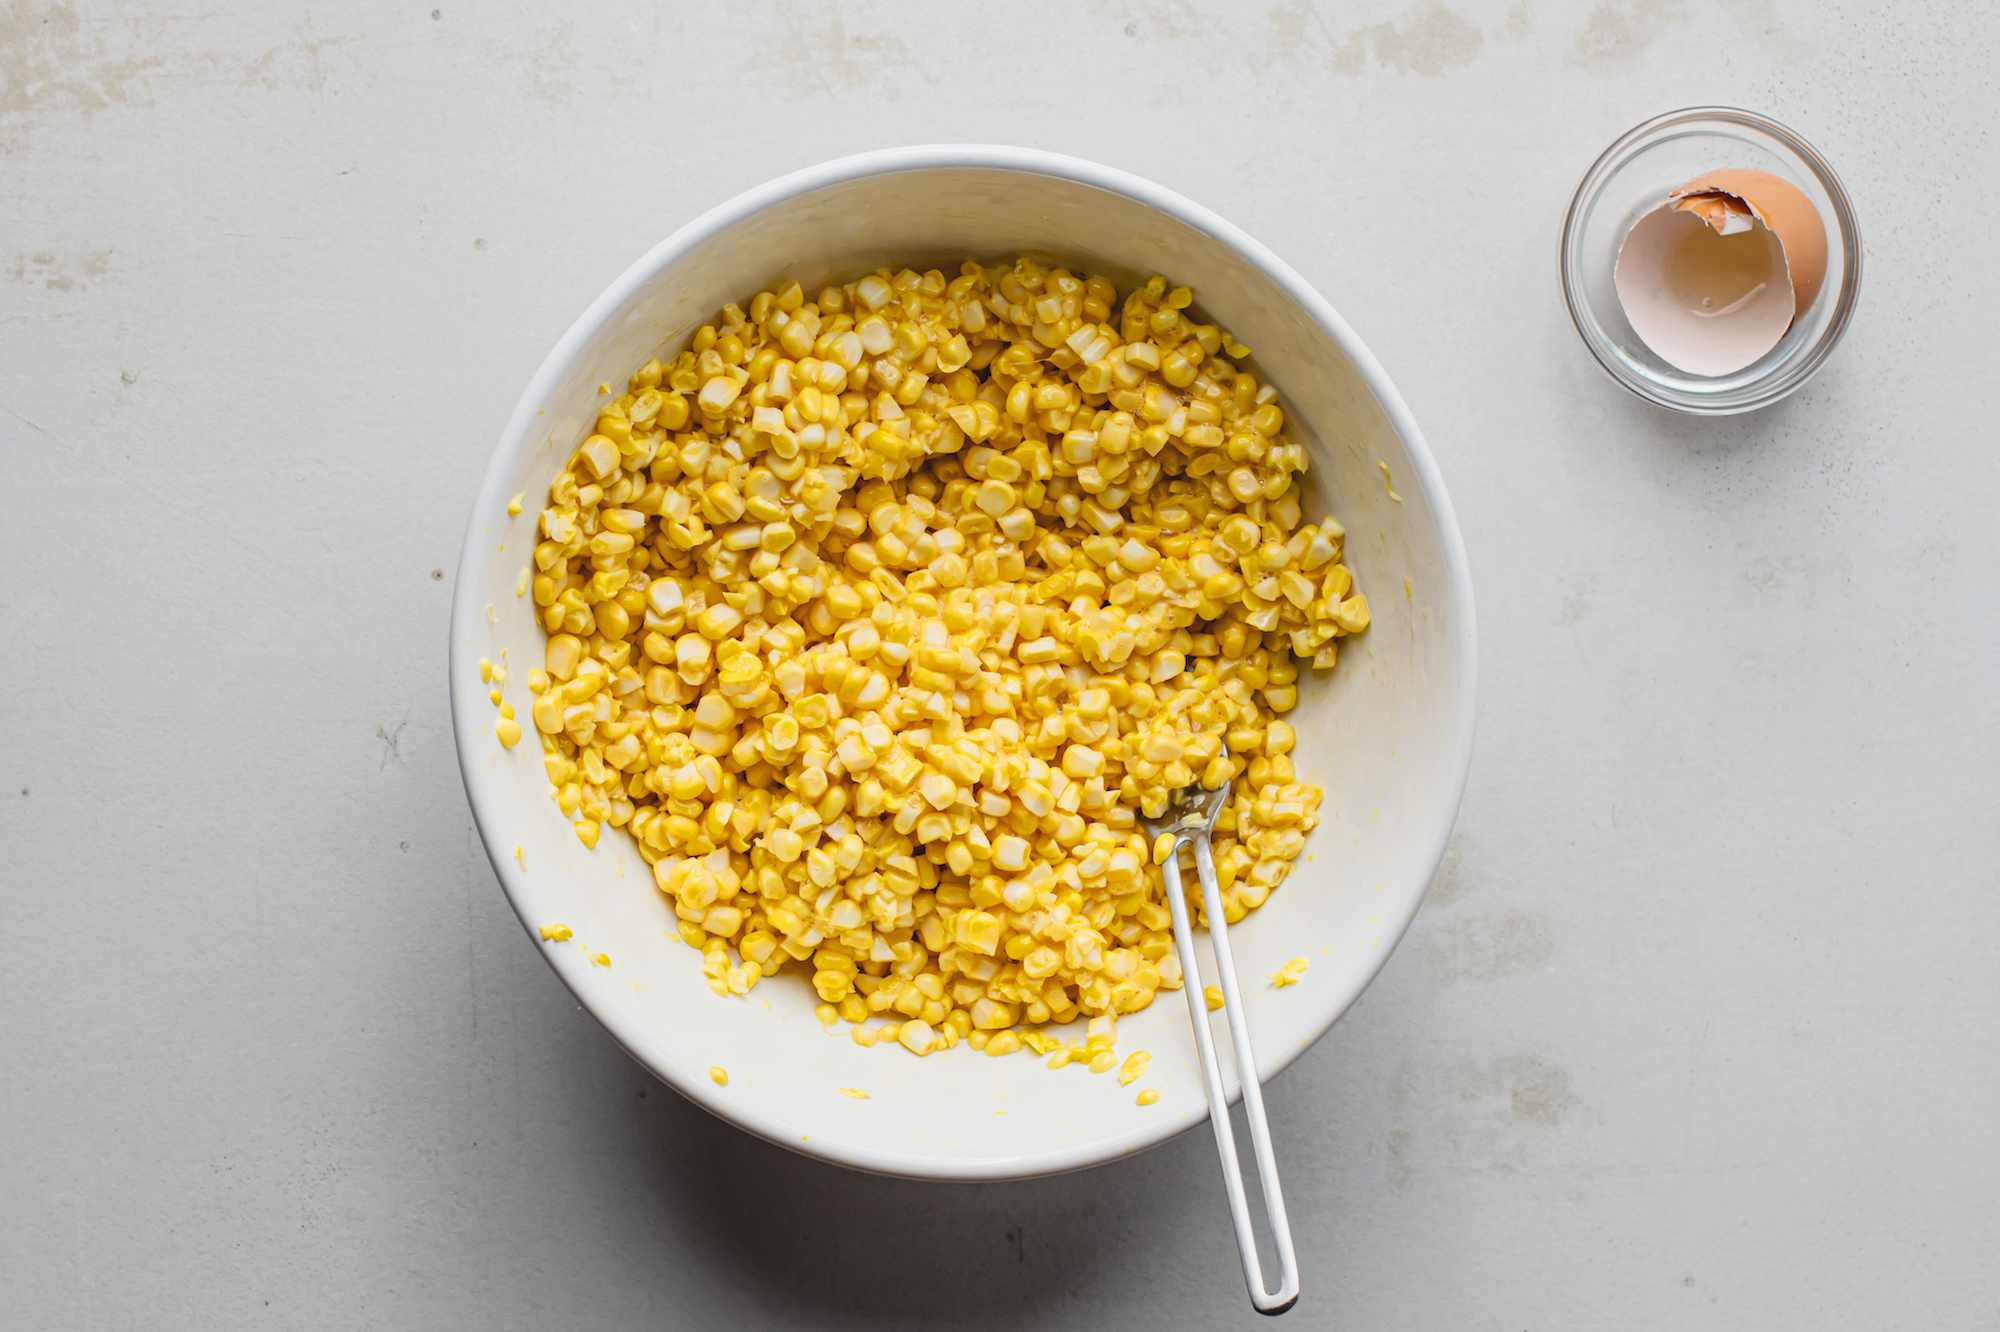 Corn kernels in a bowl with egg added